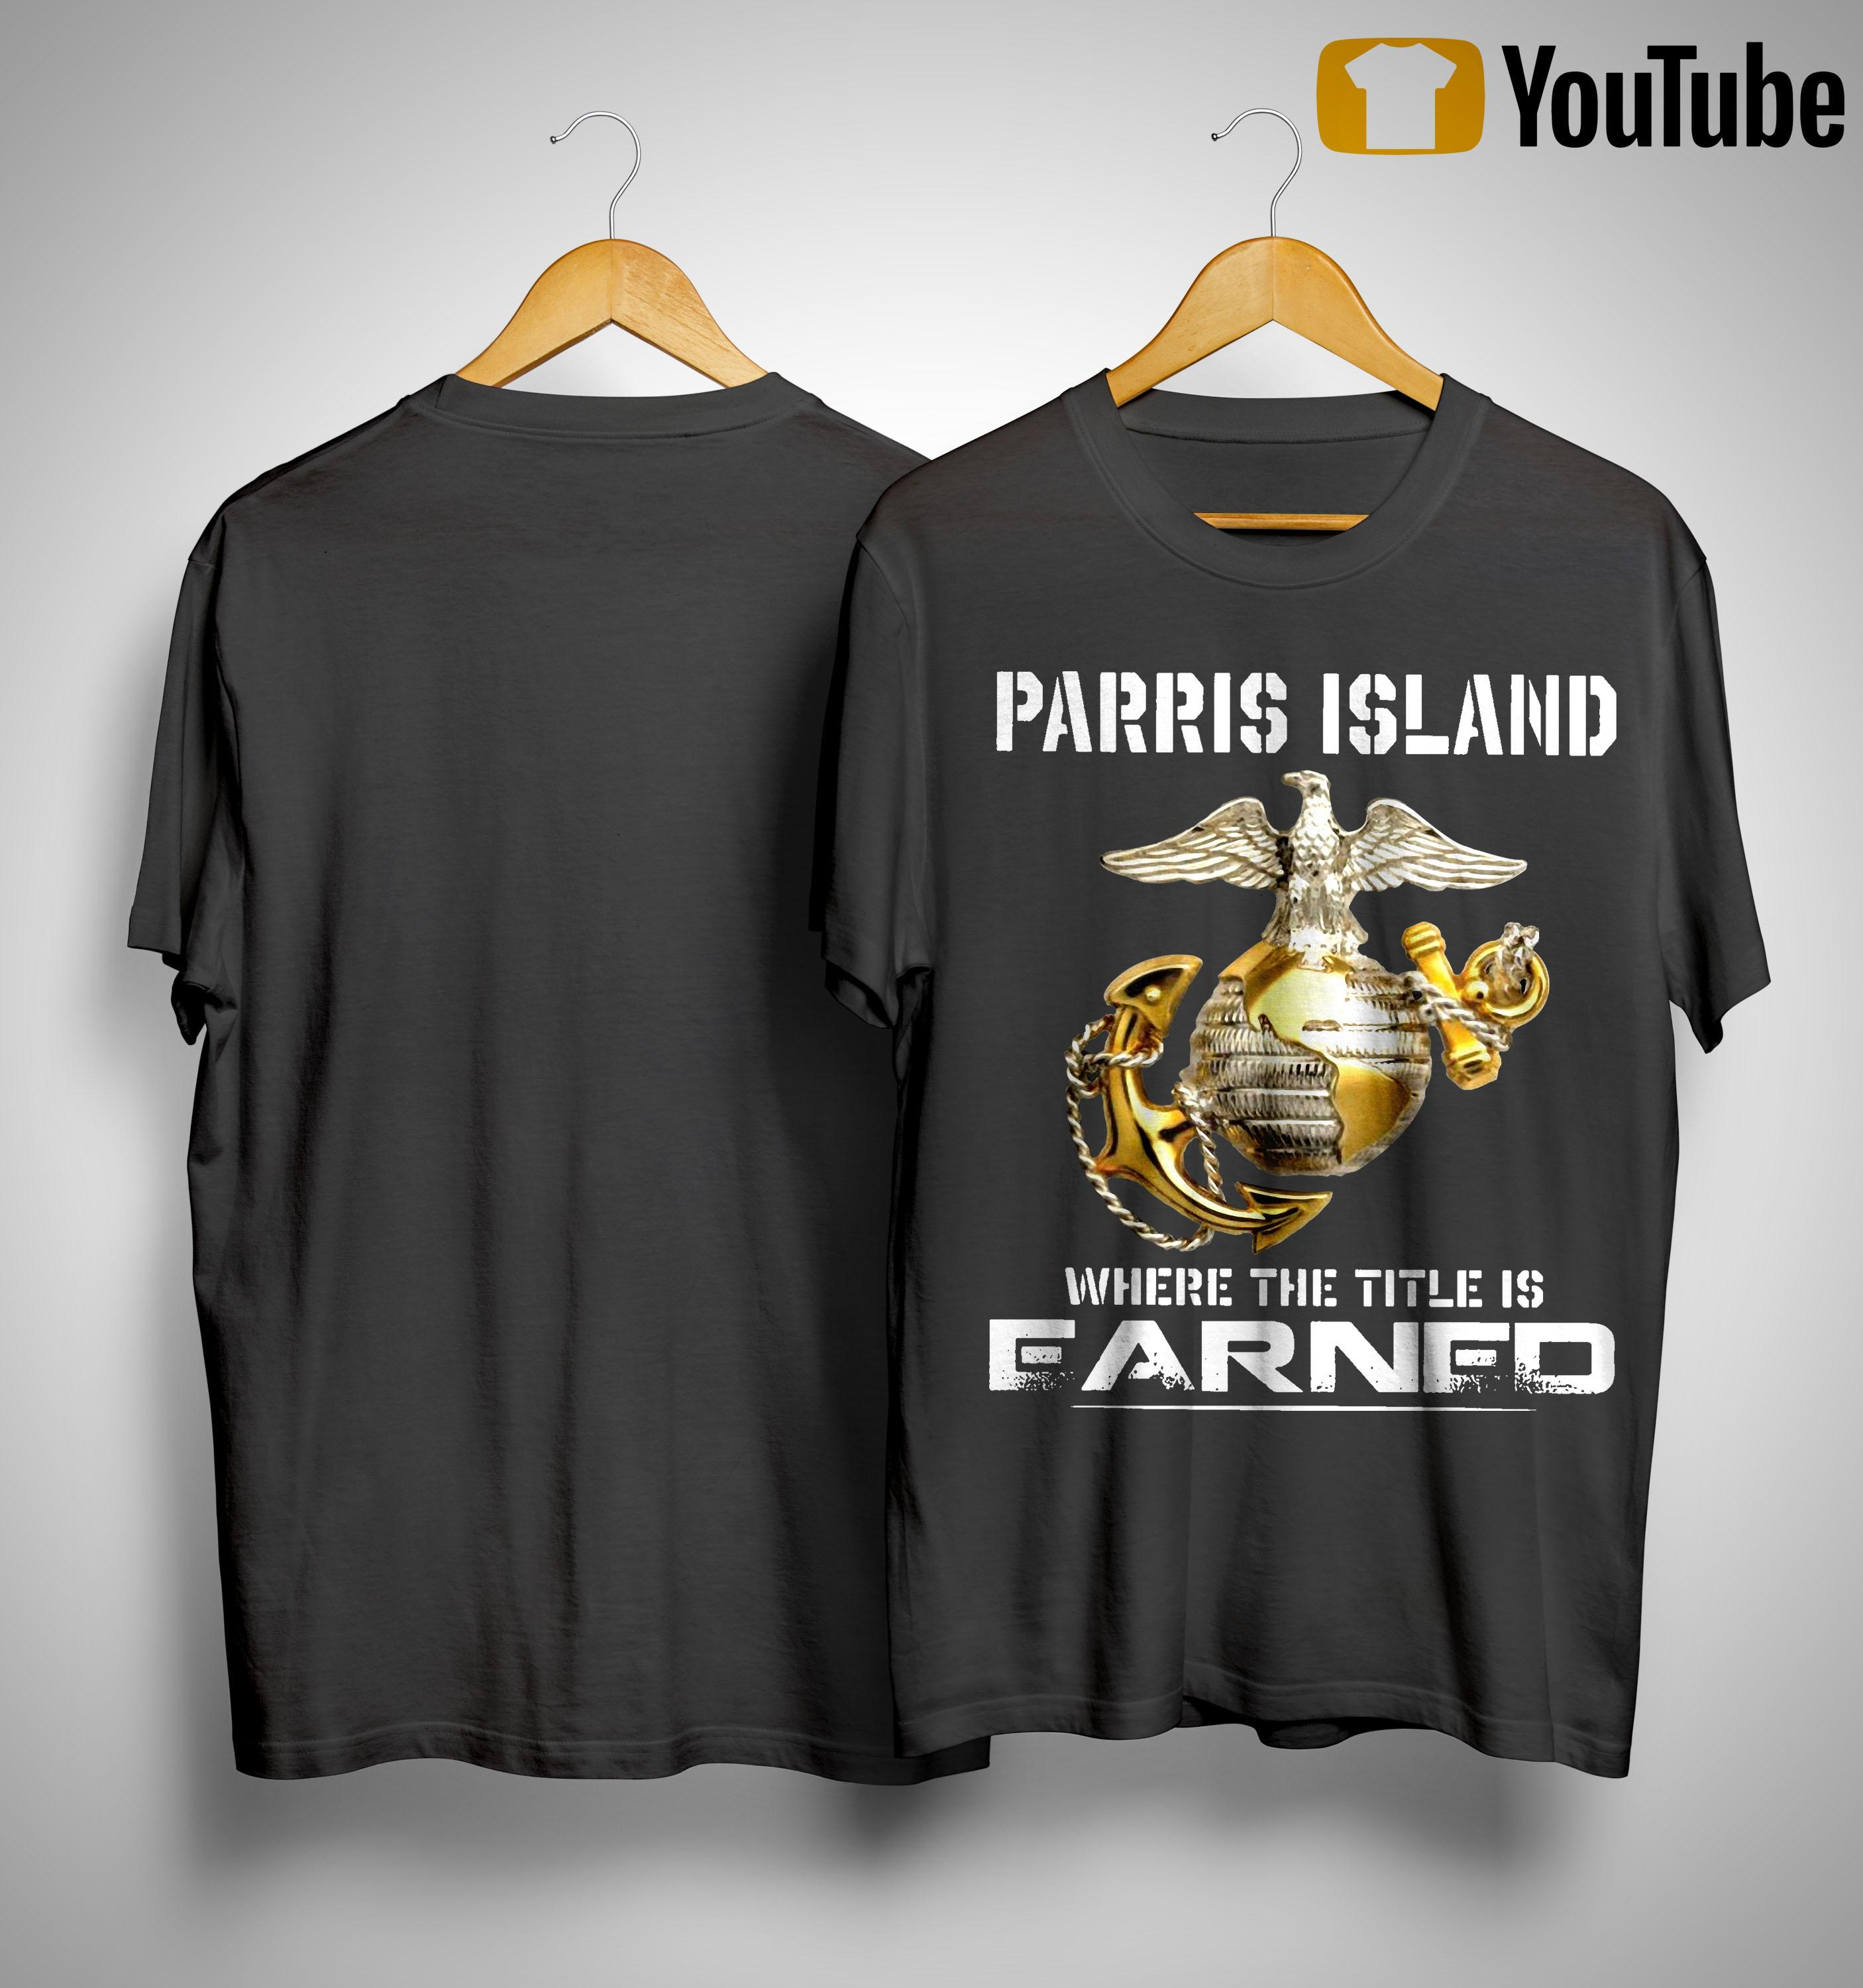 Parris Island Where The Title Is Earned Shirt